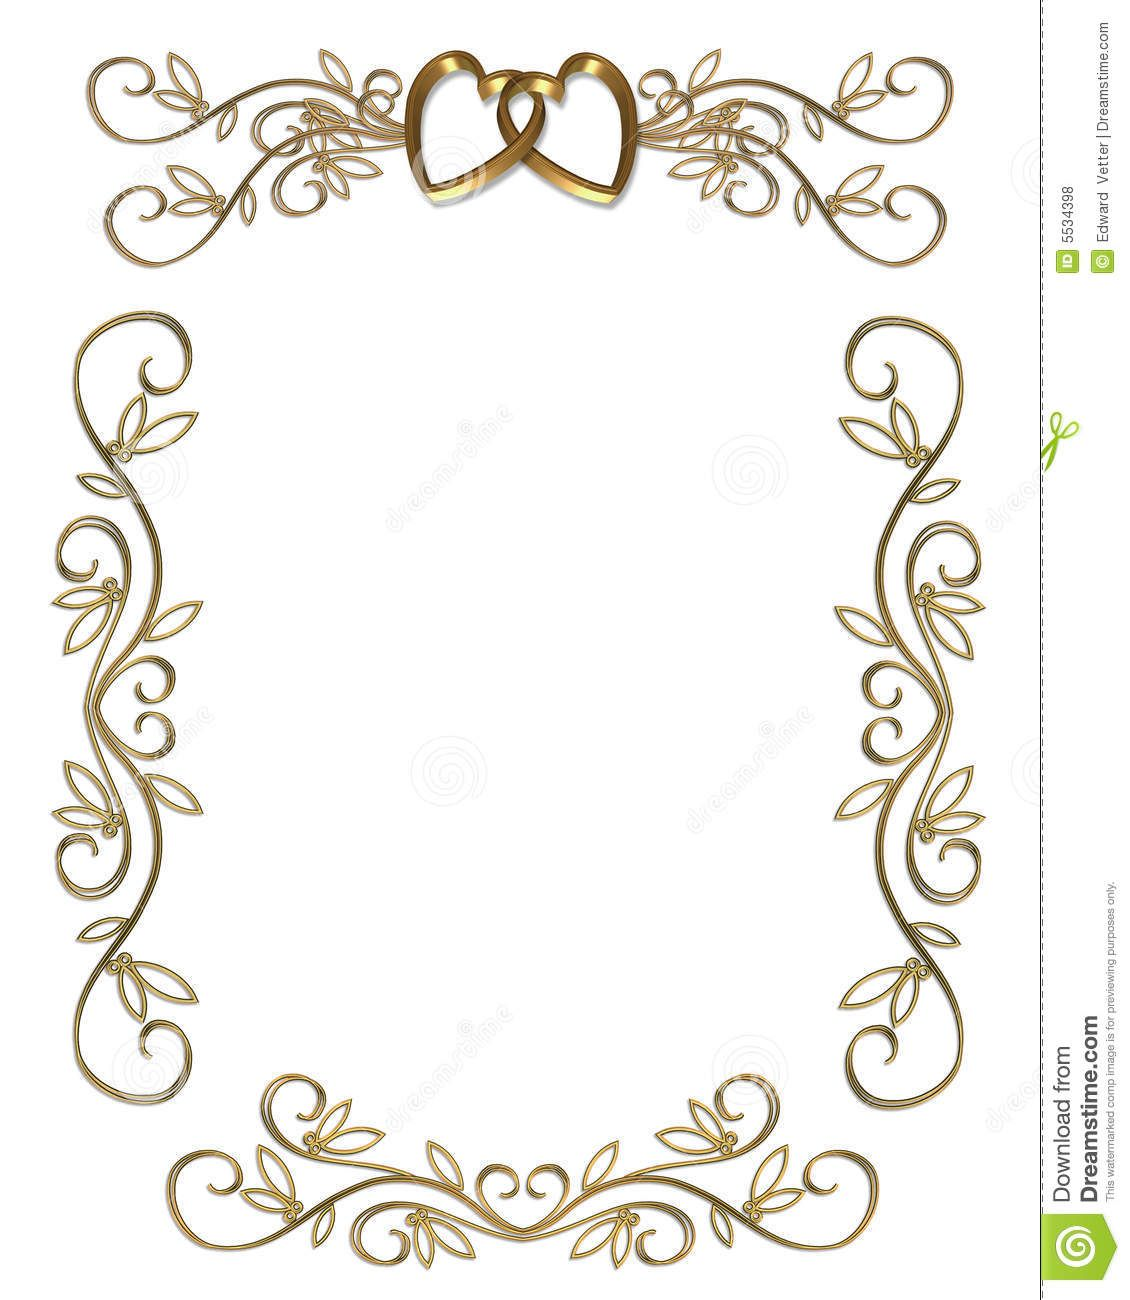 Free Wedding Ideas: Image Result For Wedding Program Borders Free Download